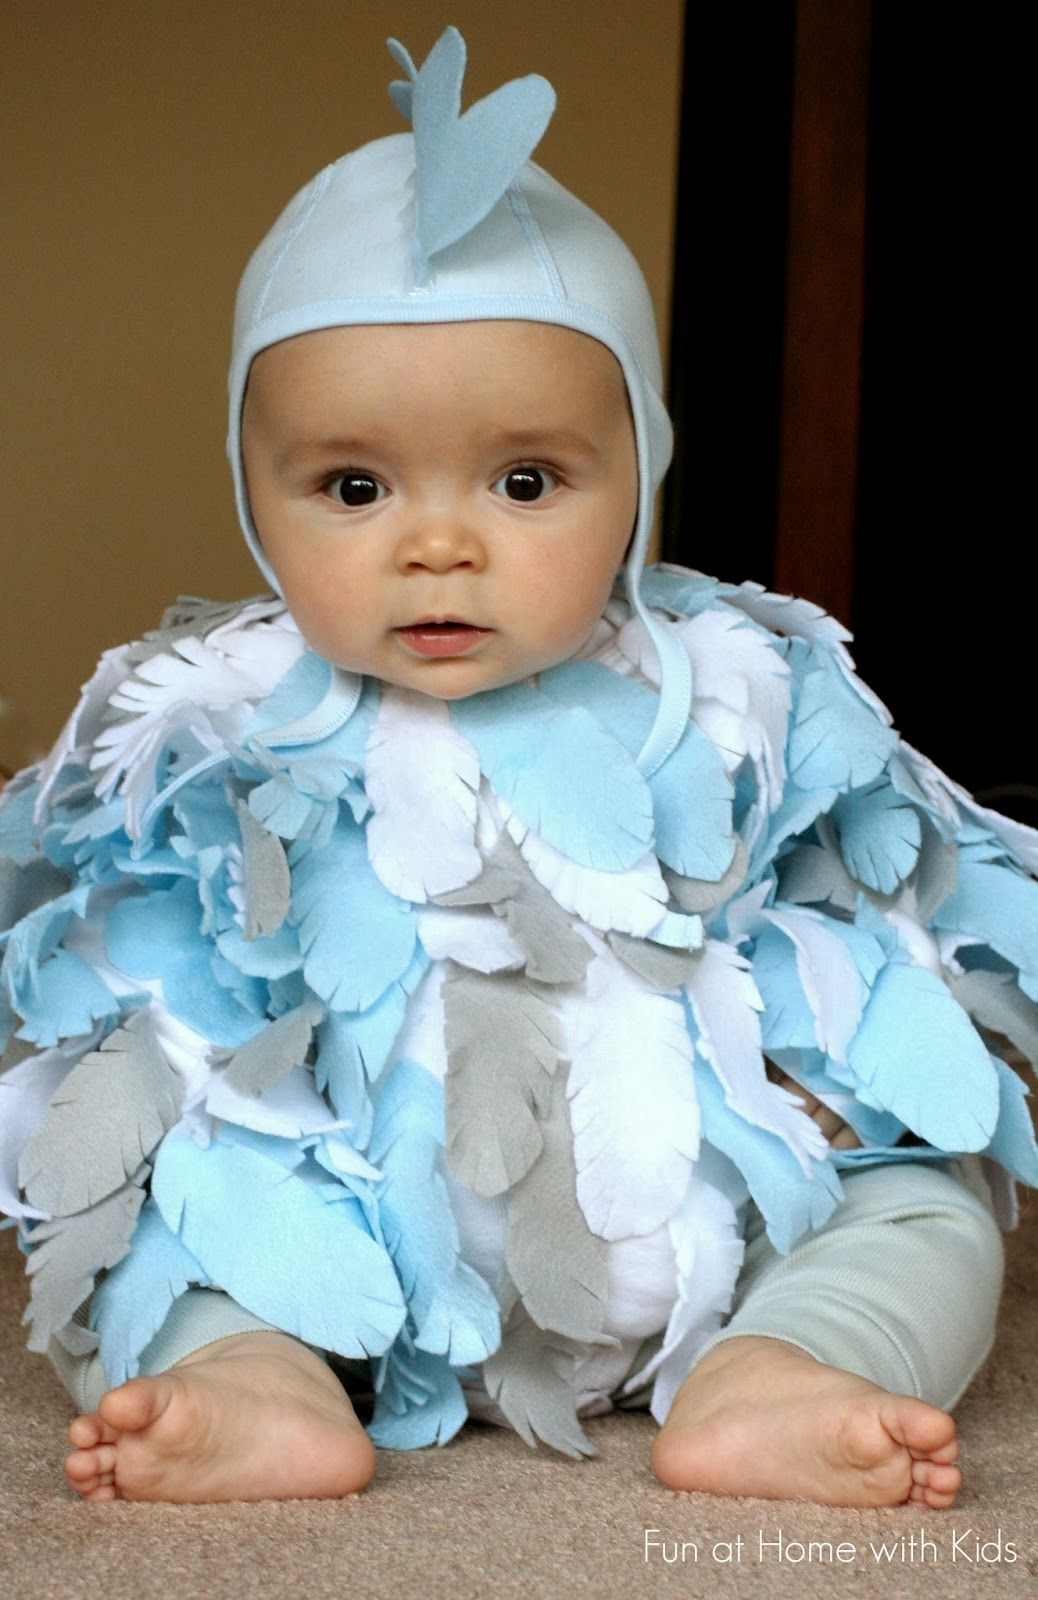 Cute diy baby halloween costume ideas best homemade infant cute diy baby halloween costume ideas best homemade infant halloween costumes solutioingenieria Gallery